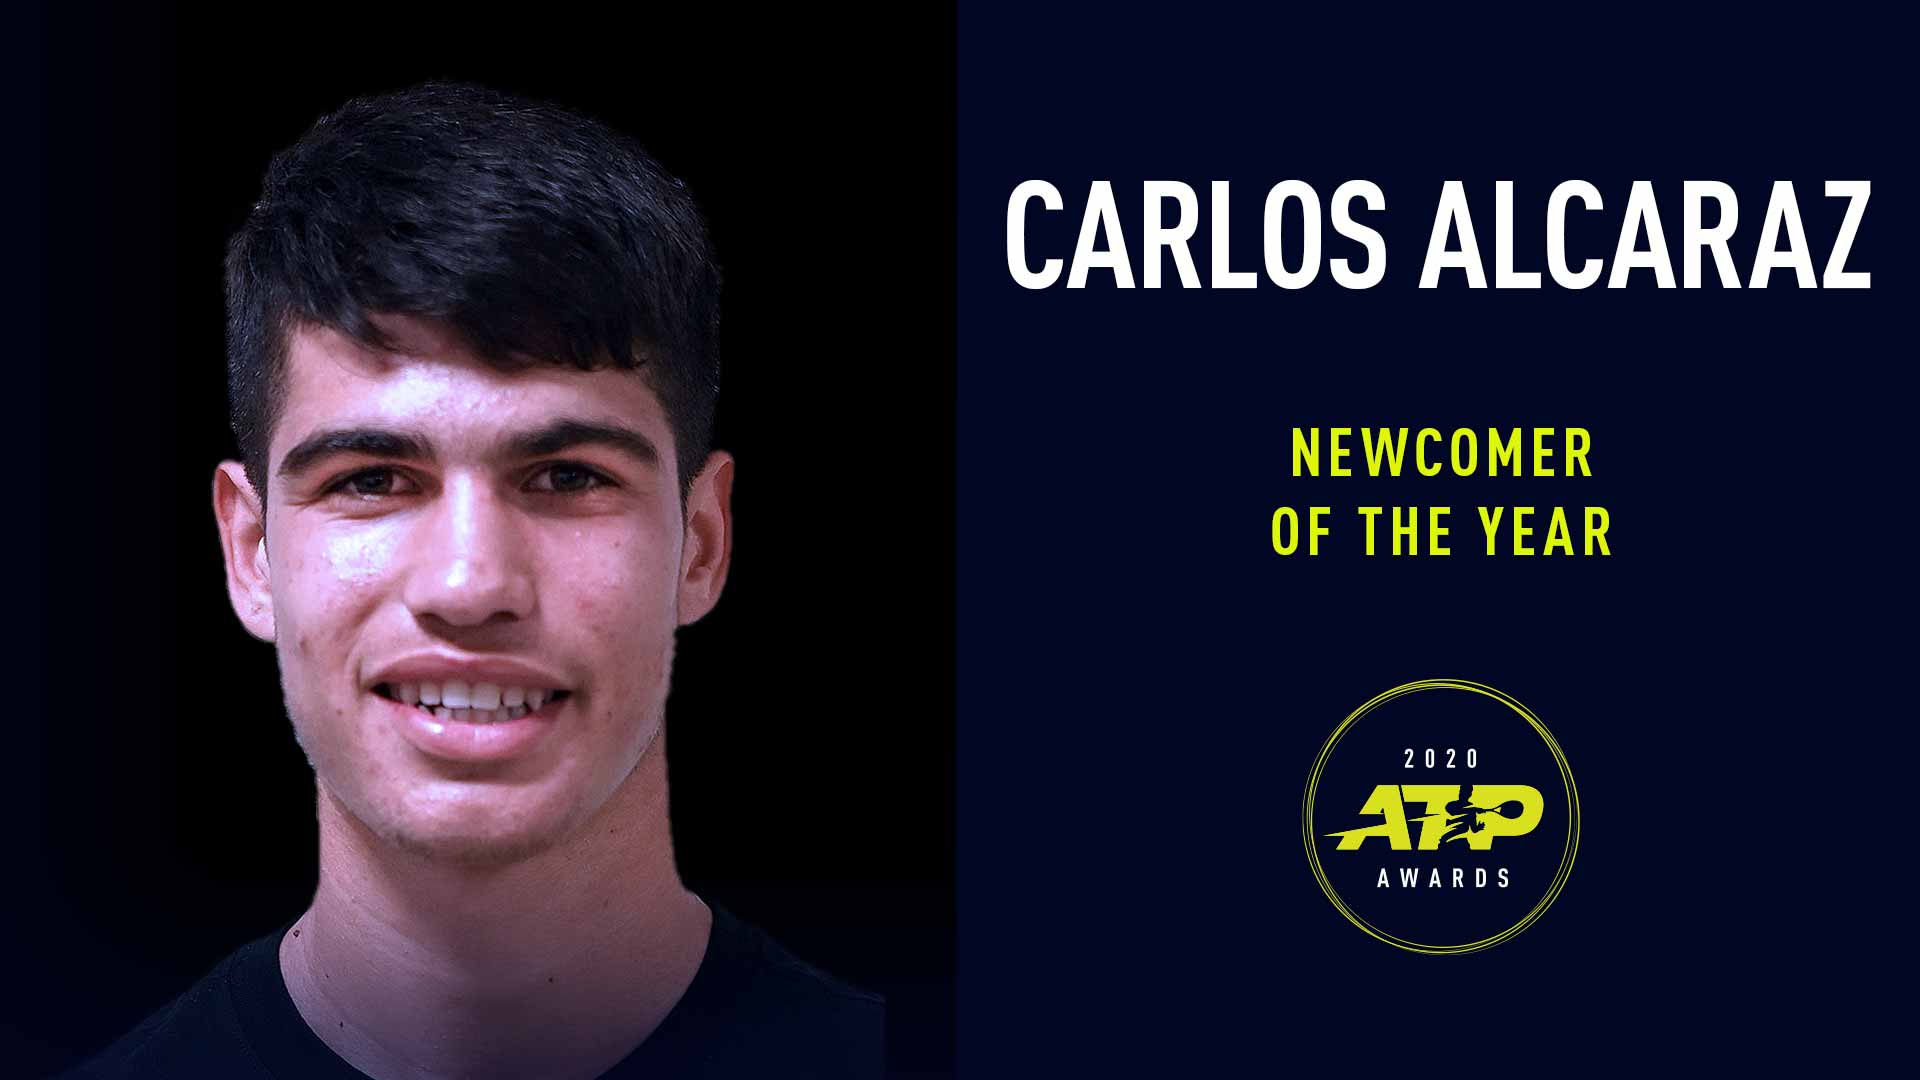 Carlos Alcaraz has been named Newcomer of the Year in the 2020 ATP Awards.